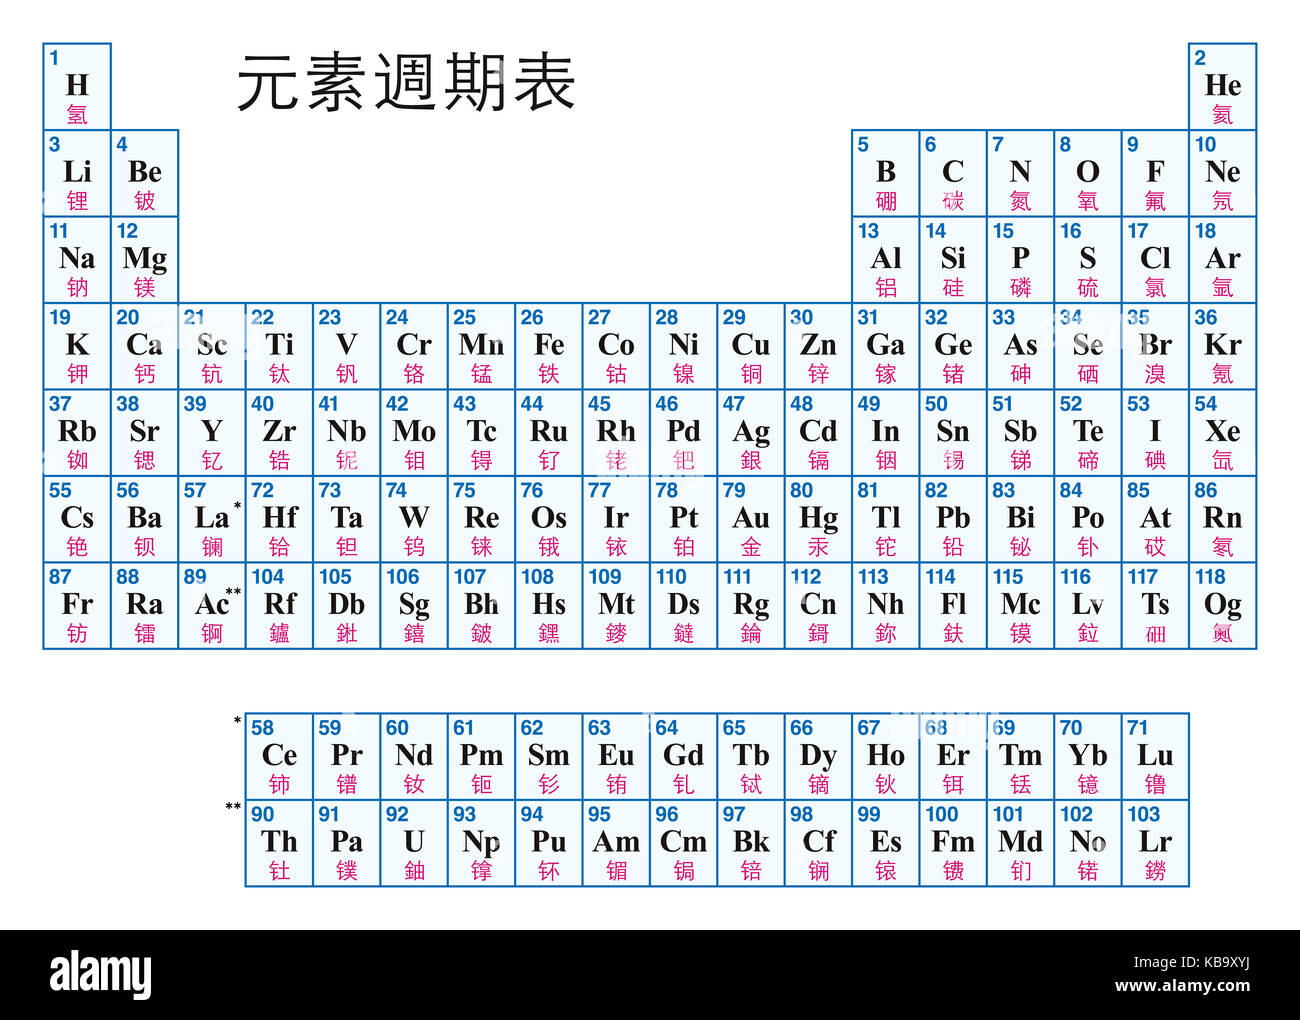 Periodic table of the elements chinese tabular arrangement of periodic table of the elements chinese tabular arrangement of chemical elements with their atomic numbers symbols and names 118 confirmed elements urtaz Gallery